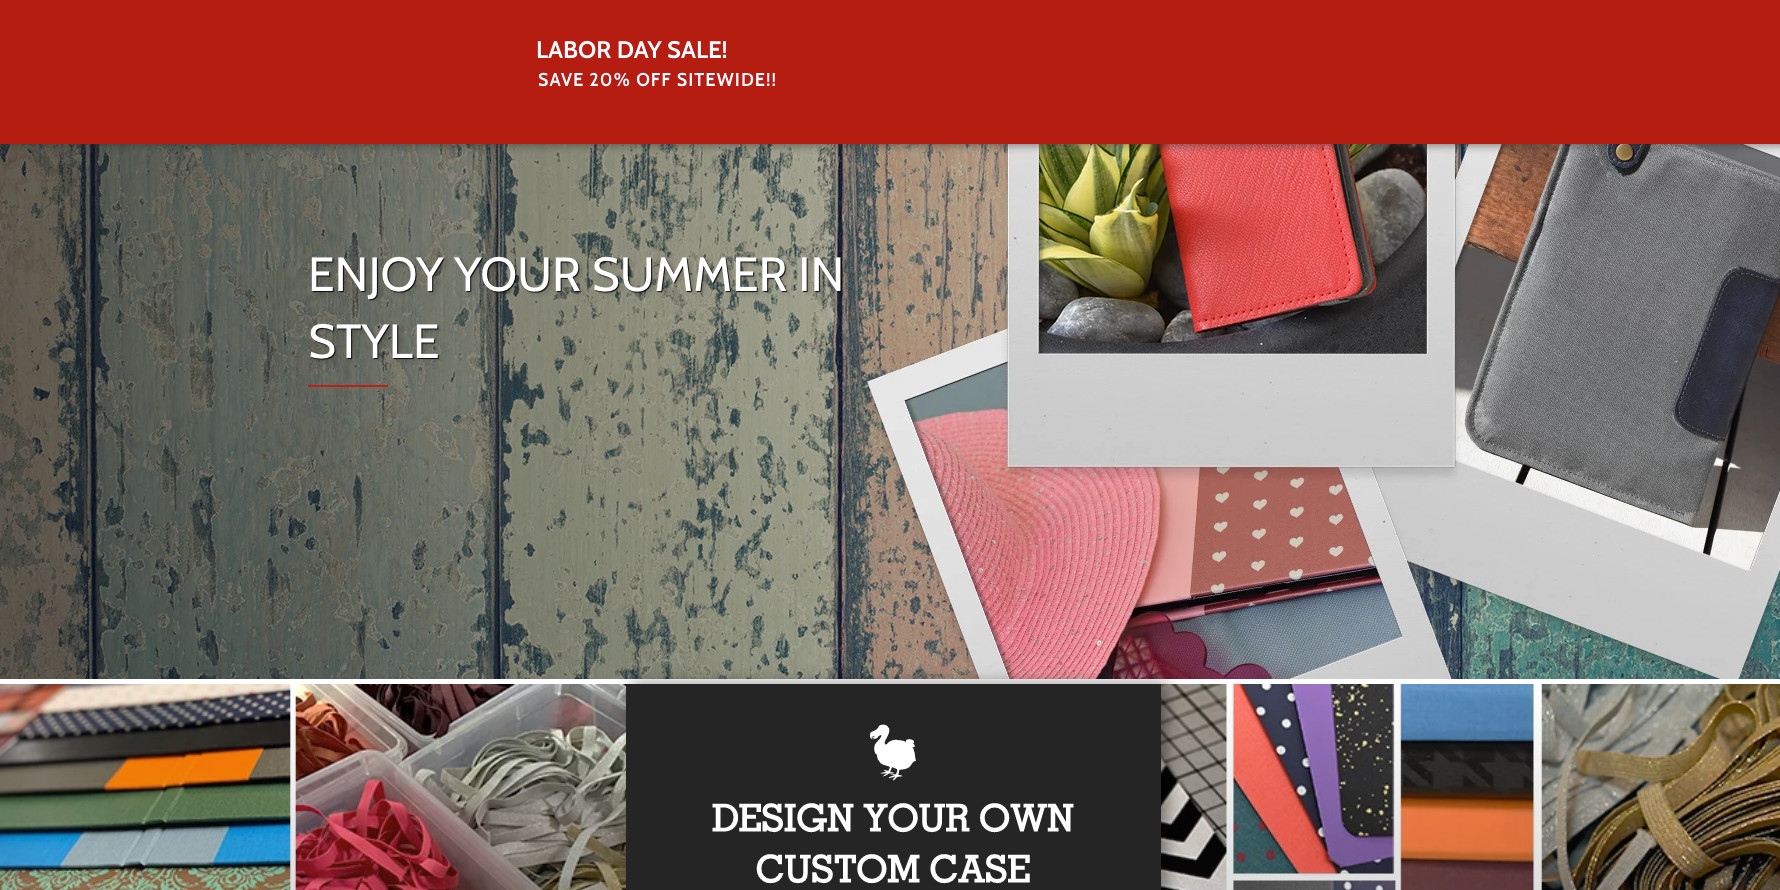 DODOcase Labor Day Sale now live at 20% off sitewide: iPhone cases, much more